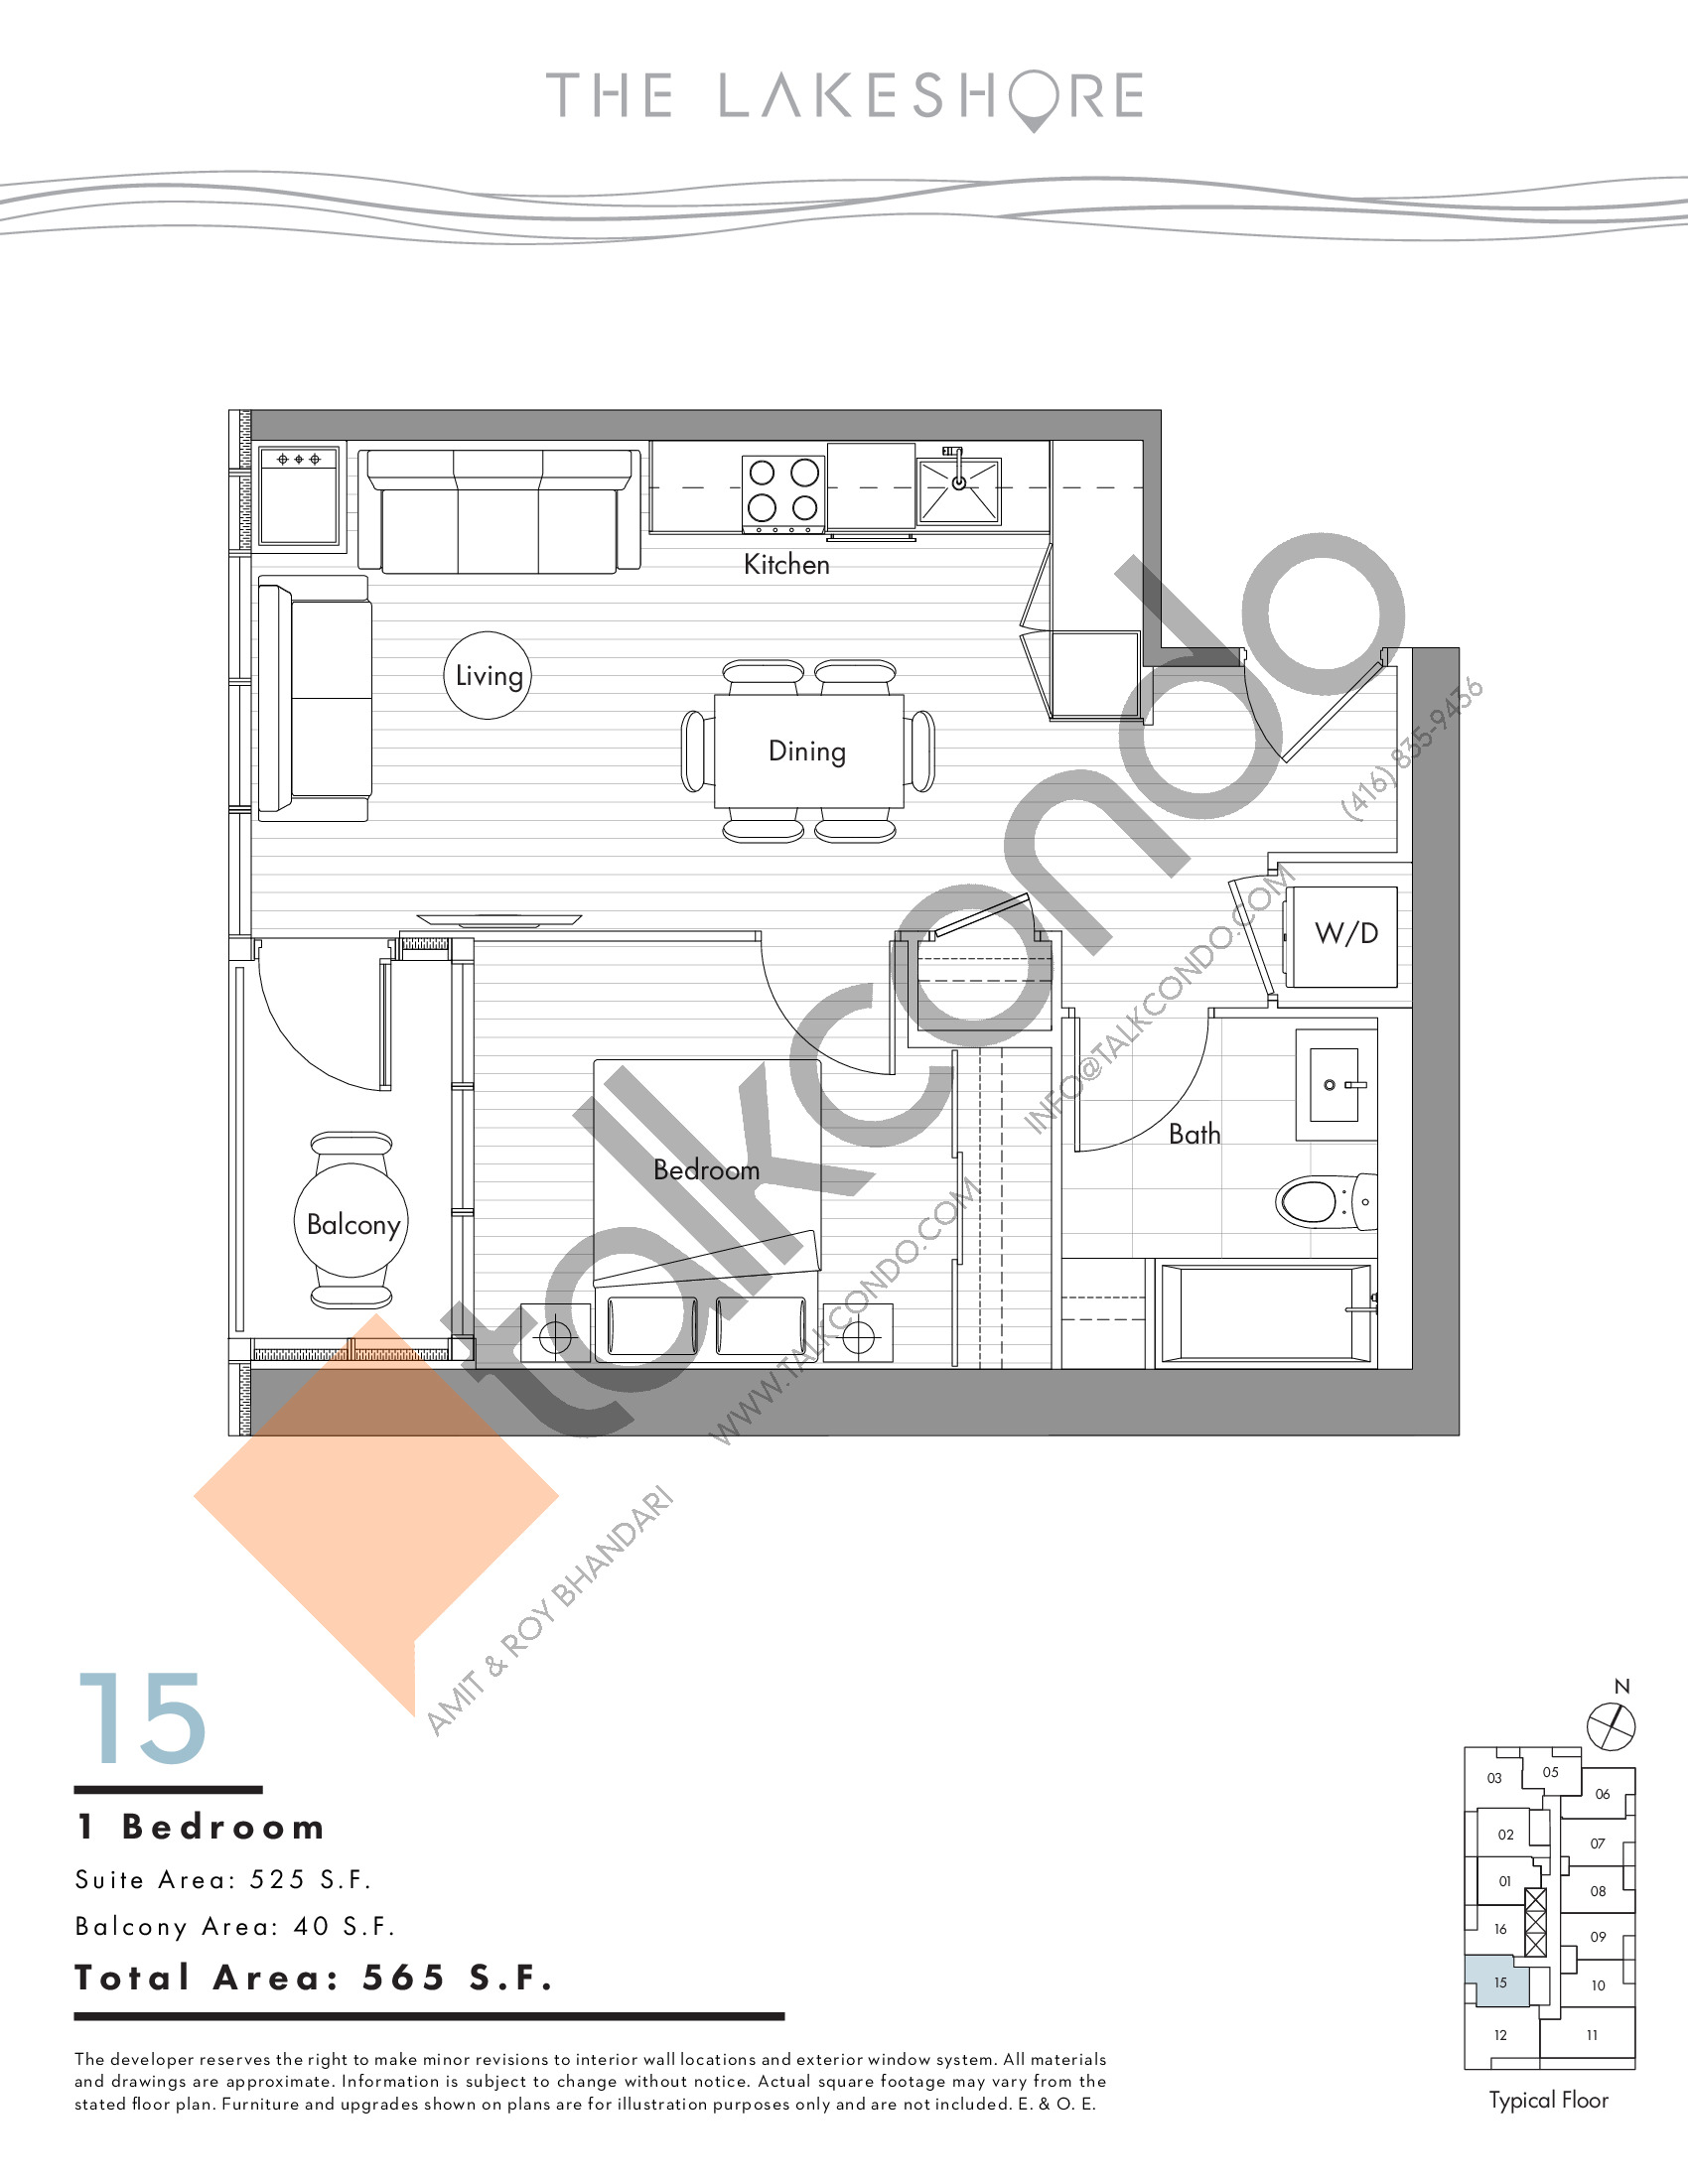 15 Floor Plan at The LakeShore Condos - 525 sq.ft